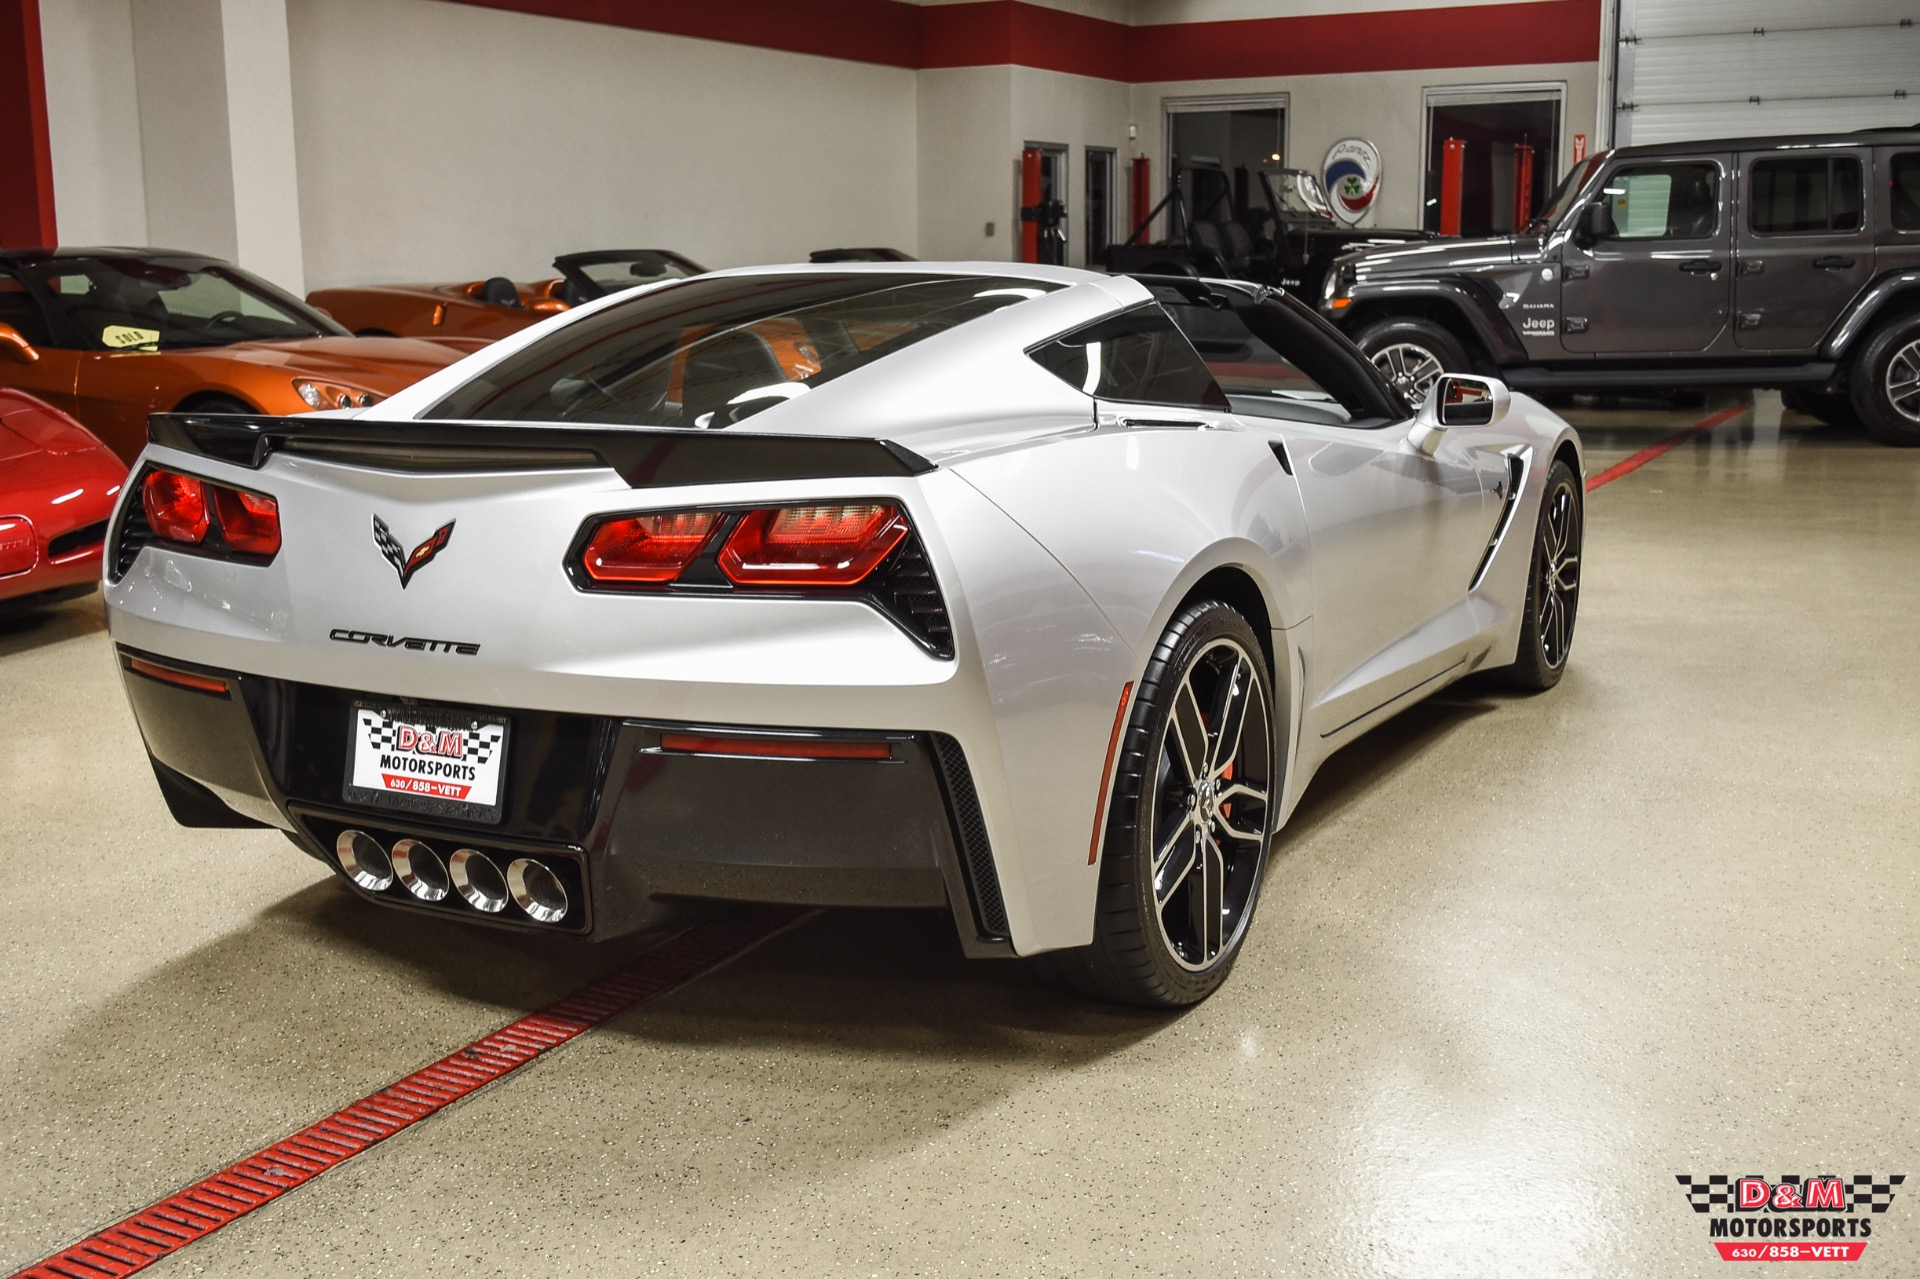 Used 2018 Chevrolet Corvette Stingray Coupe | Glen Ellyn, IL